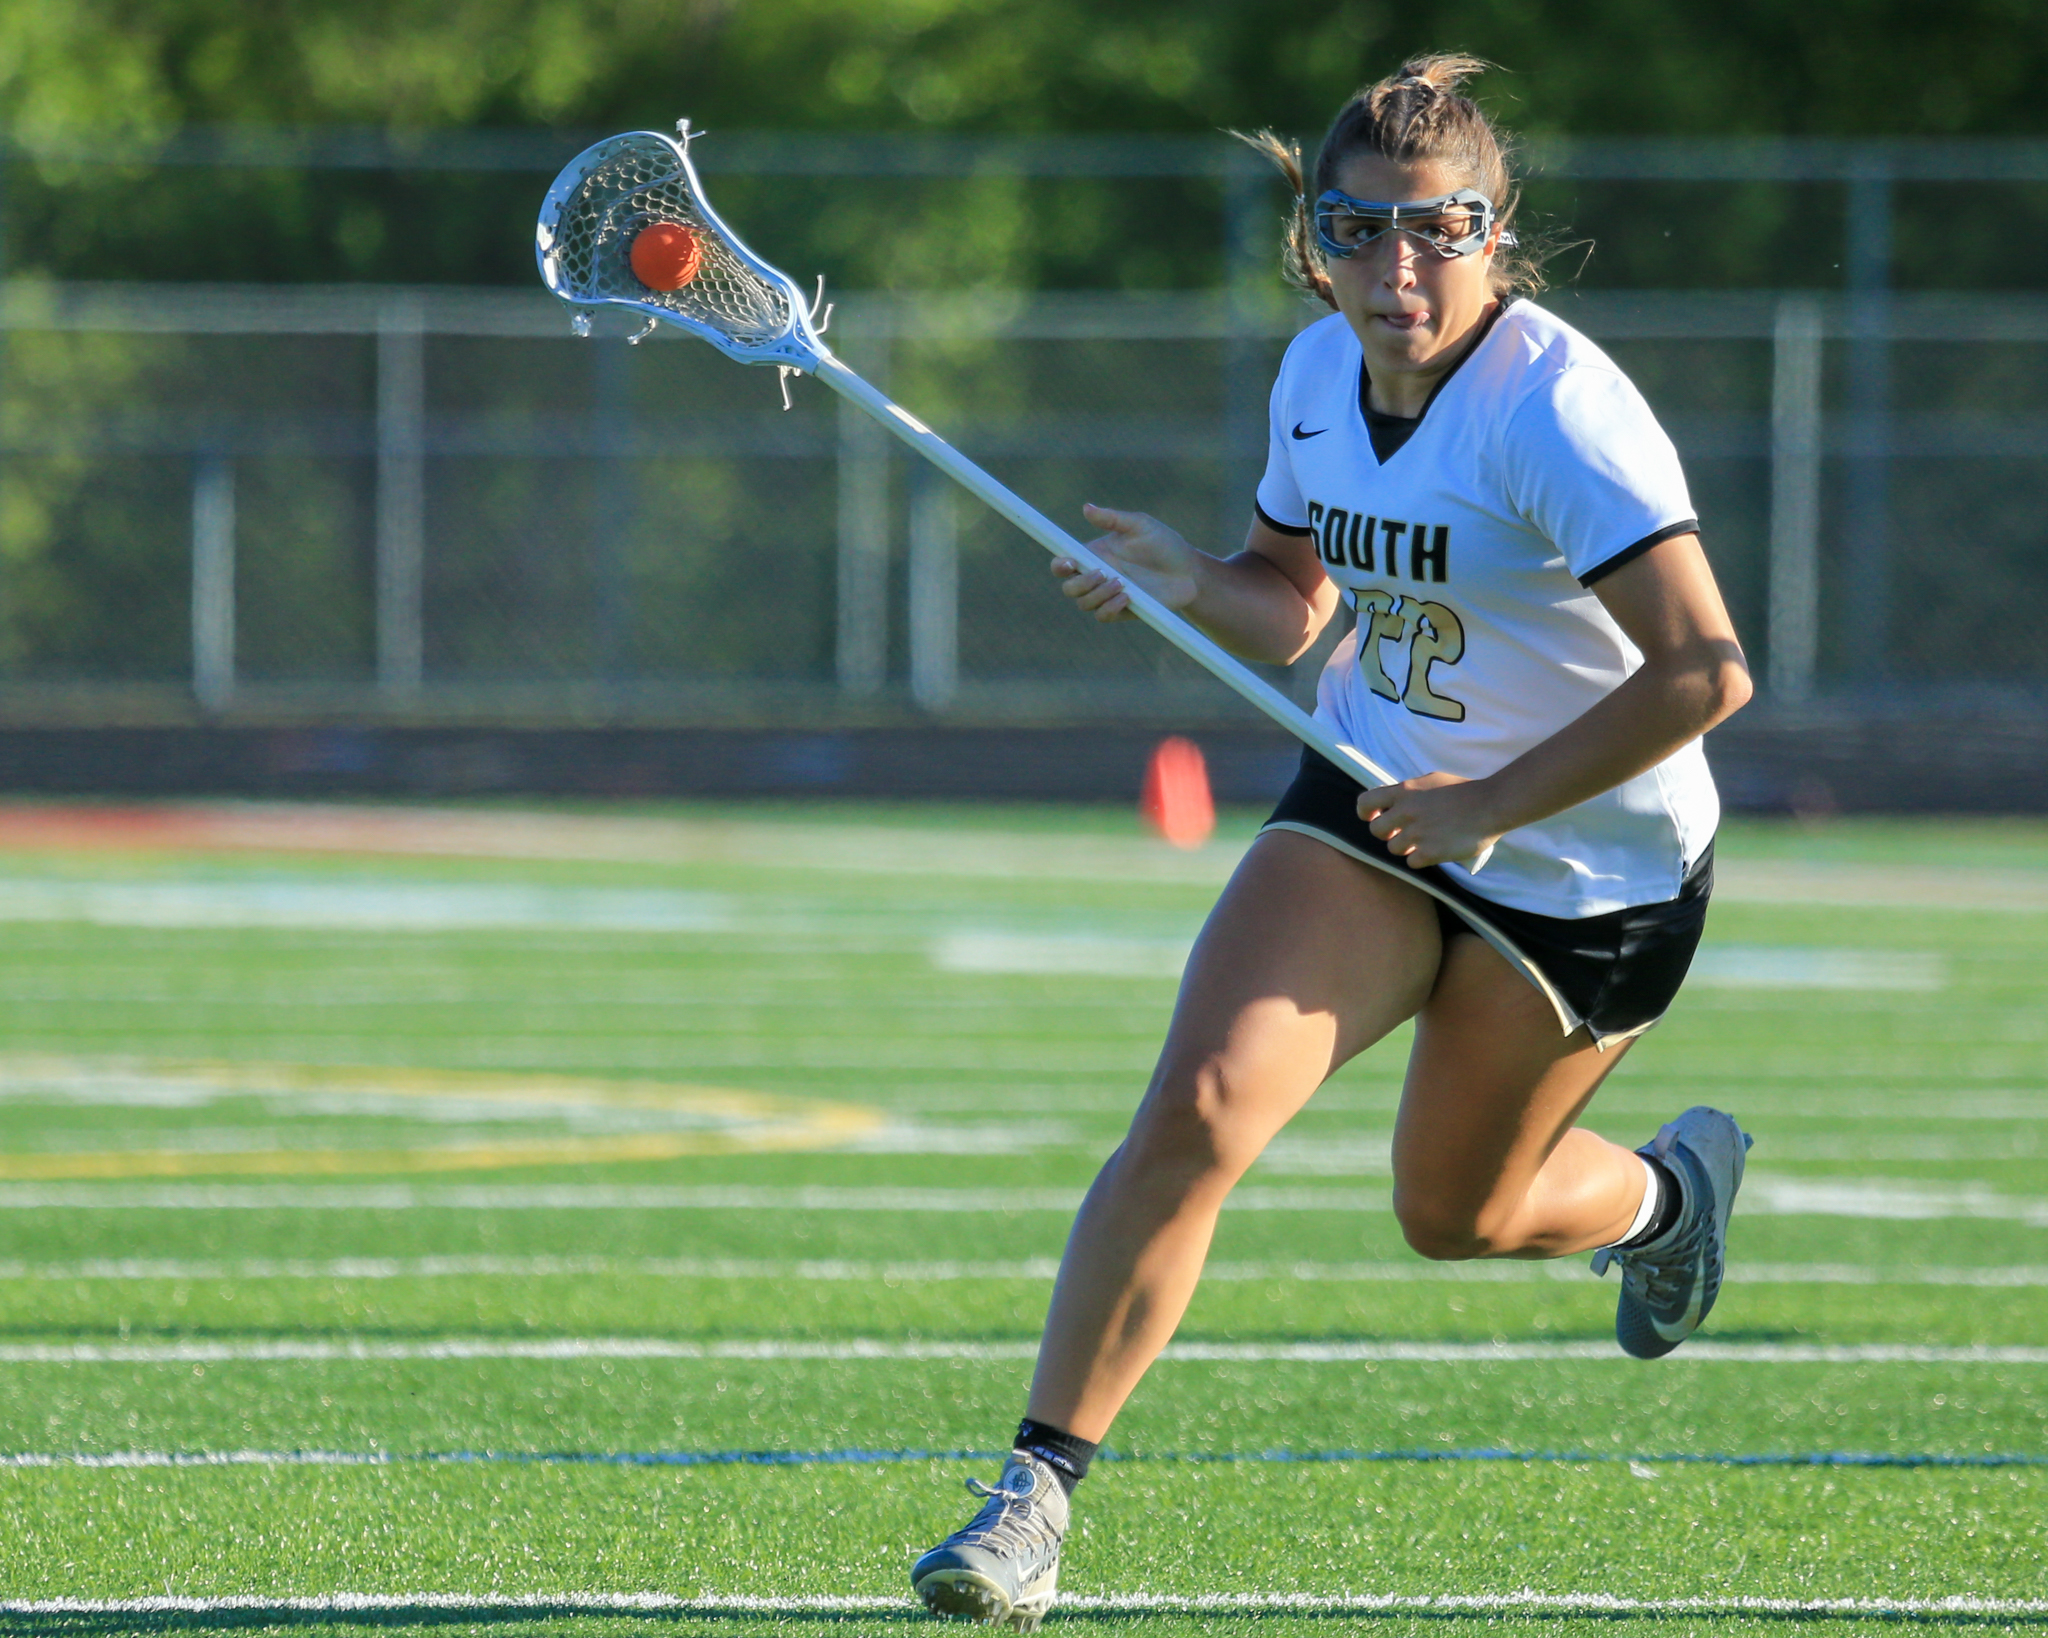 Lakeville South's Brielle Fannin (22) had two goals and three assists in the team's 15-13 victory over Blake Friday evening. Fannin leads the state in assists with 54 for the season. Photo by Jeff Lawler, SportsEngine